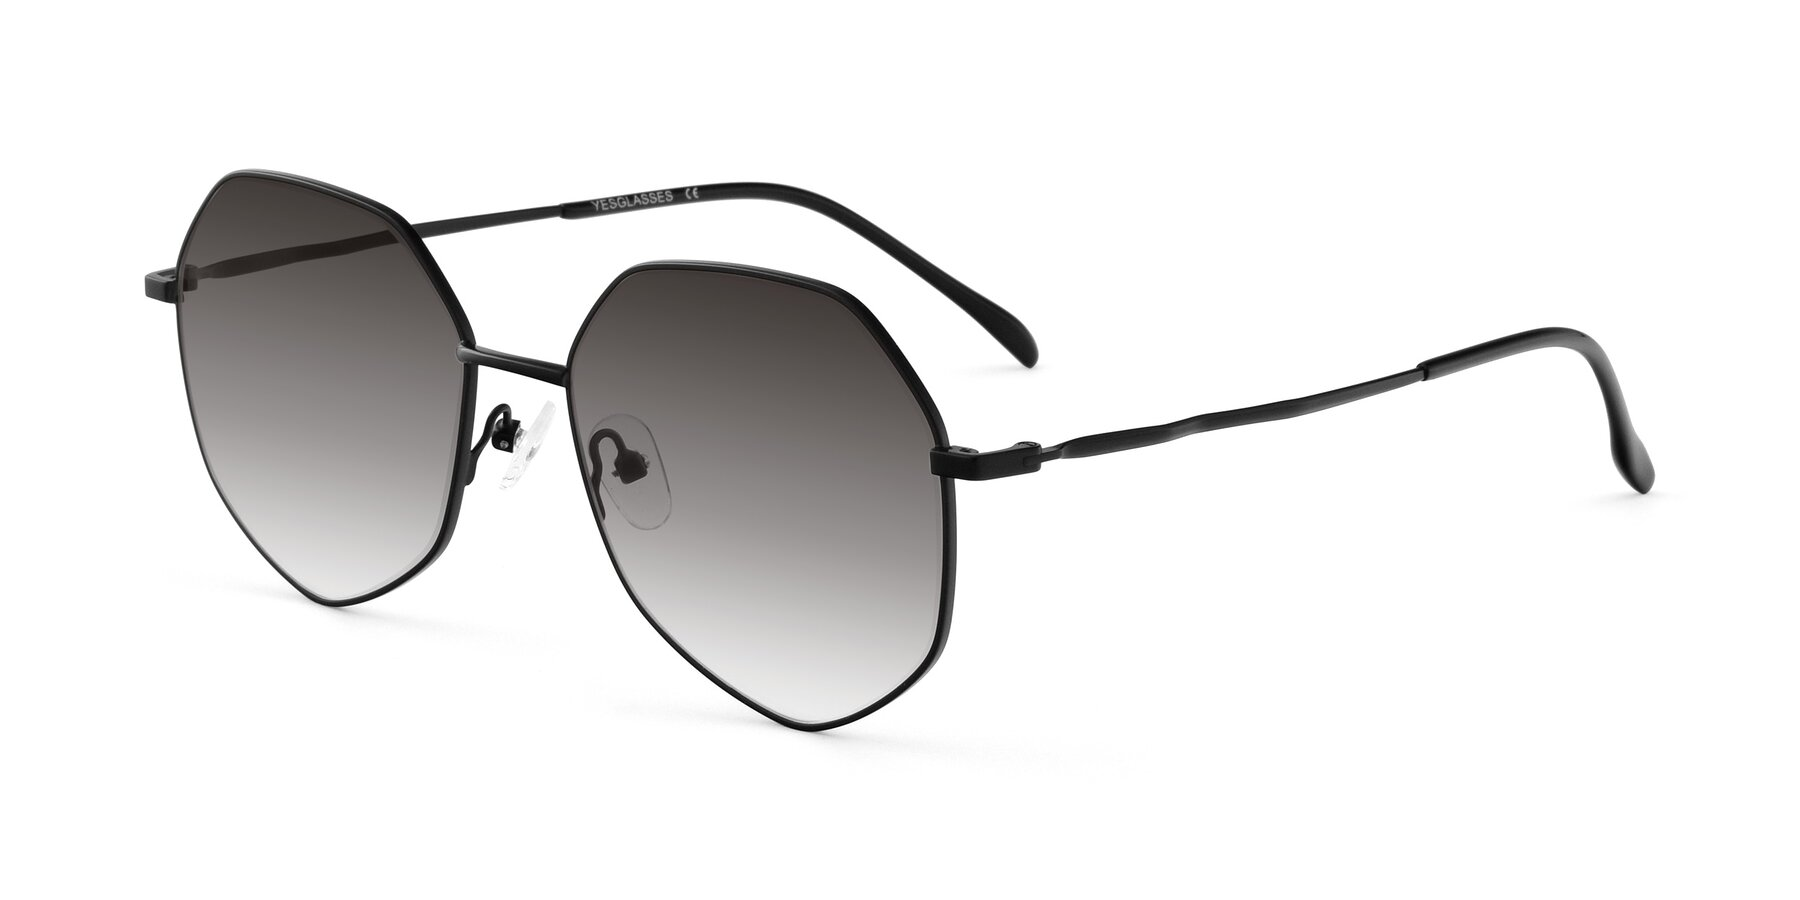 Angle of Sunshine in Black with Gray Gradient Lenses